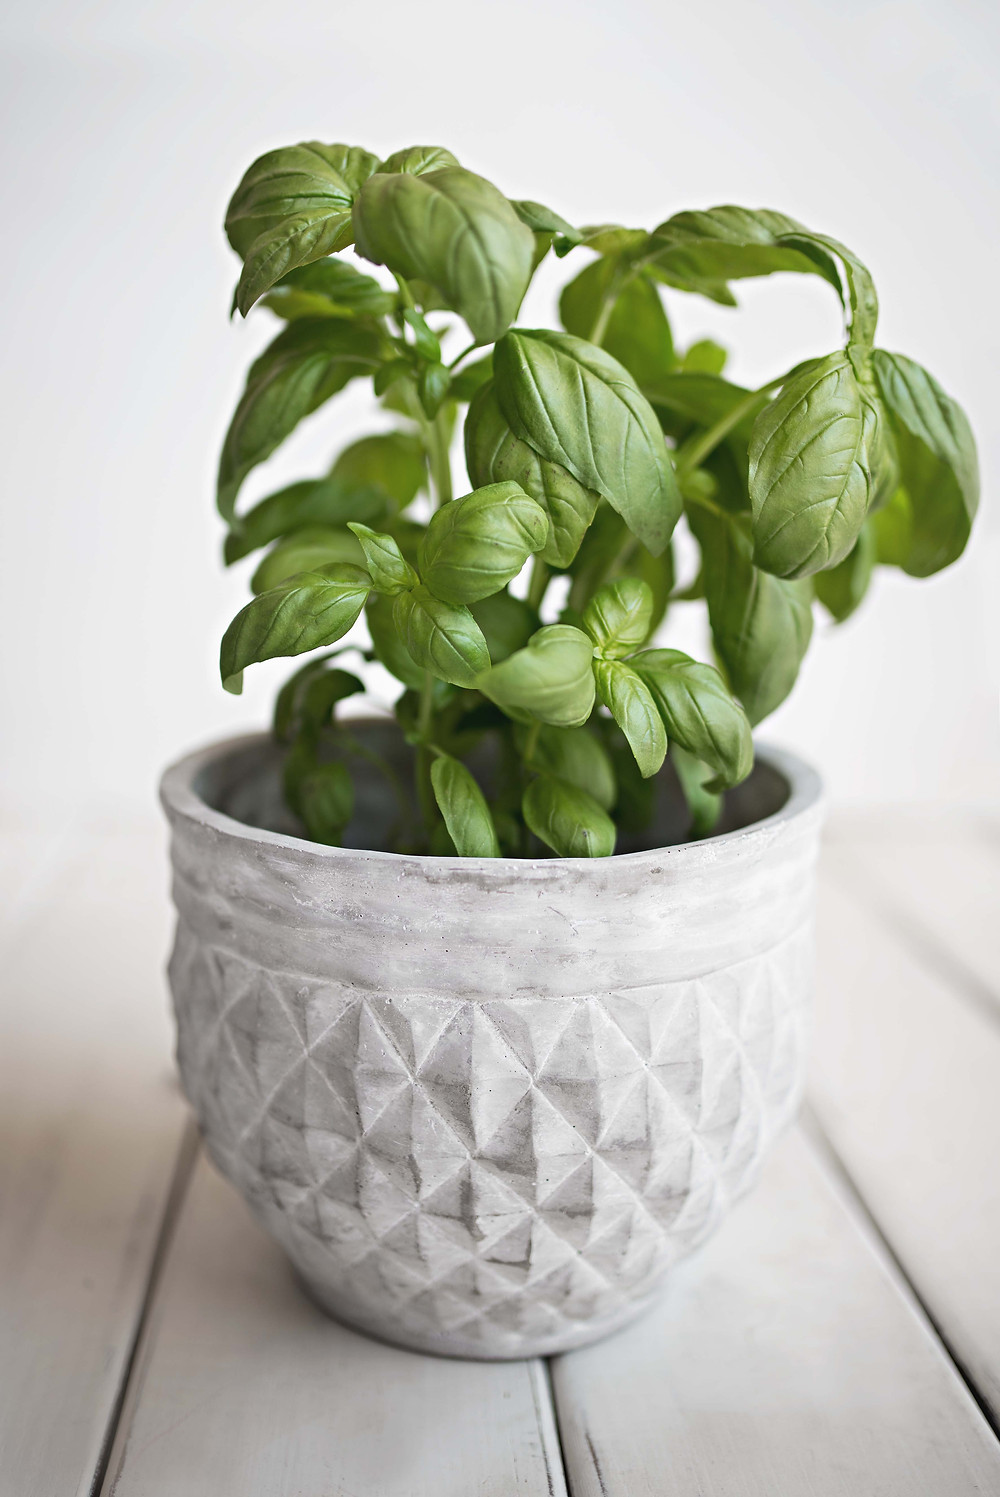 picture of basil in a white container